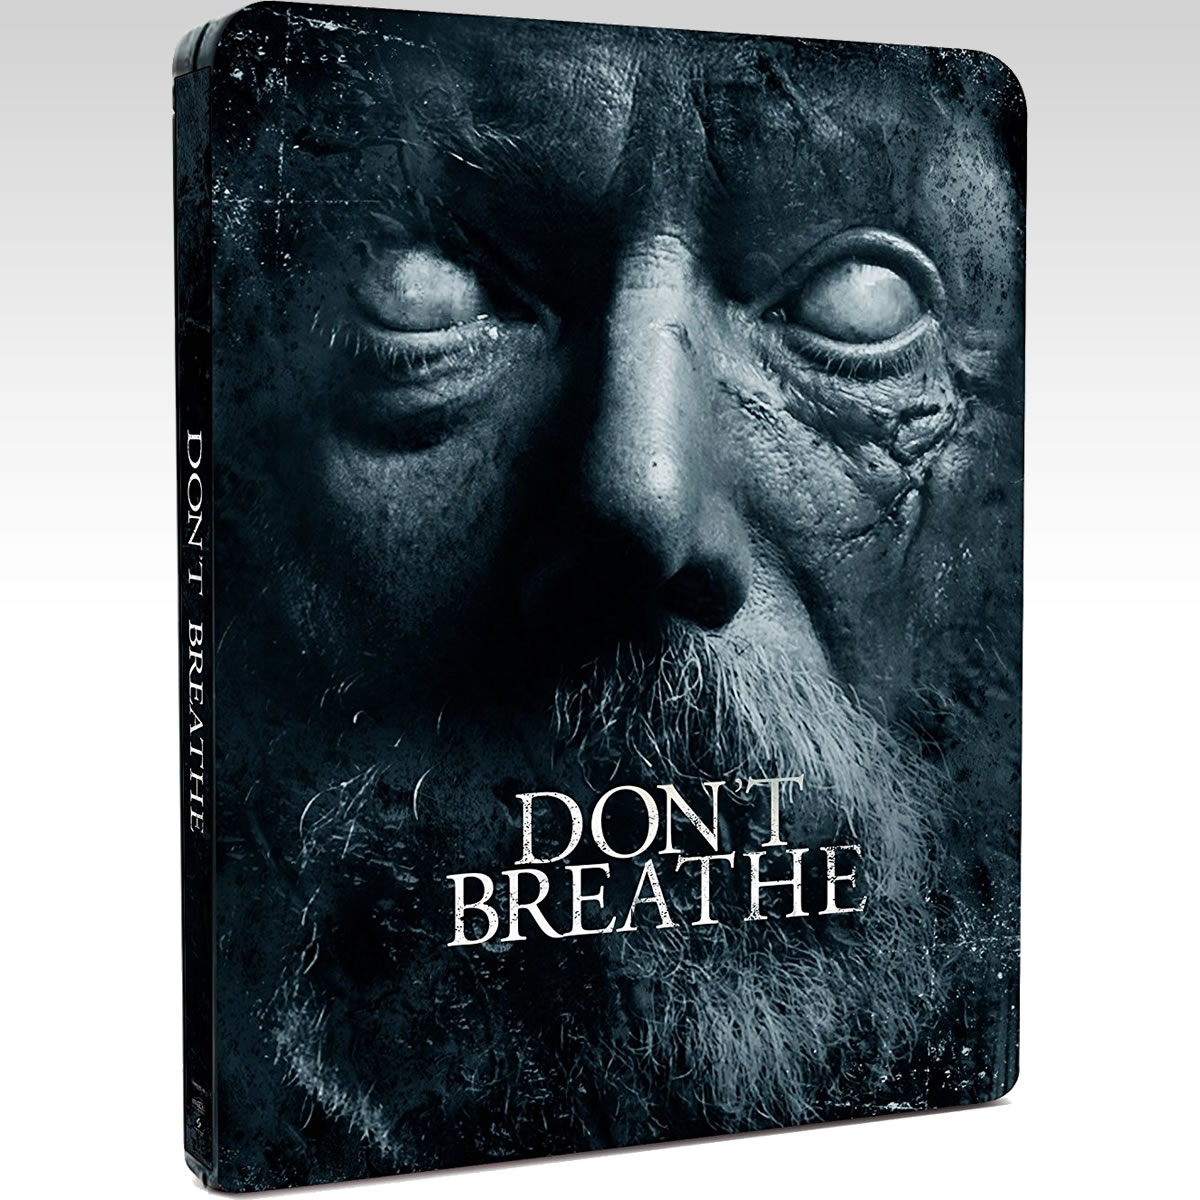 DON'T BREATHE Limited Edition Steelbook ΑΠΟΚΛΕΙΣΤΙΚΟ (BLU-RAY)